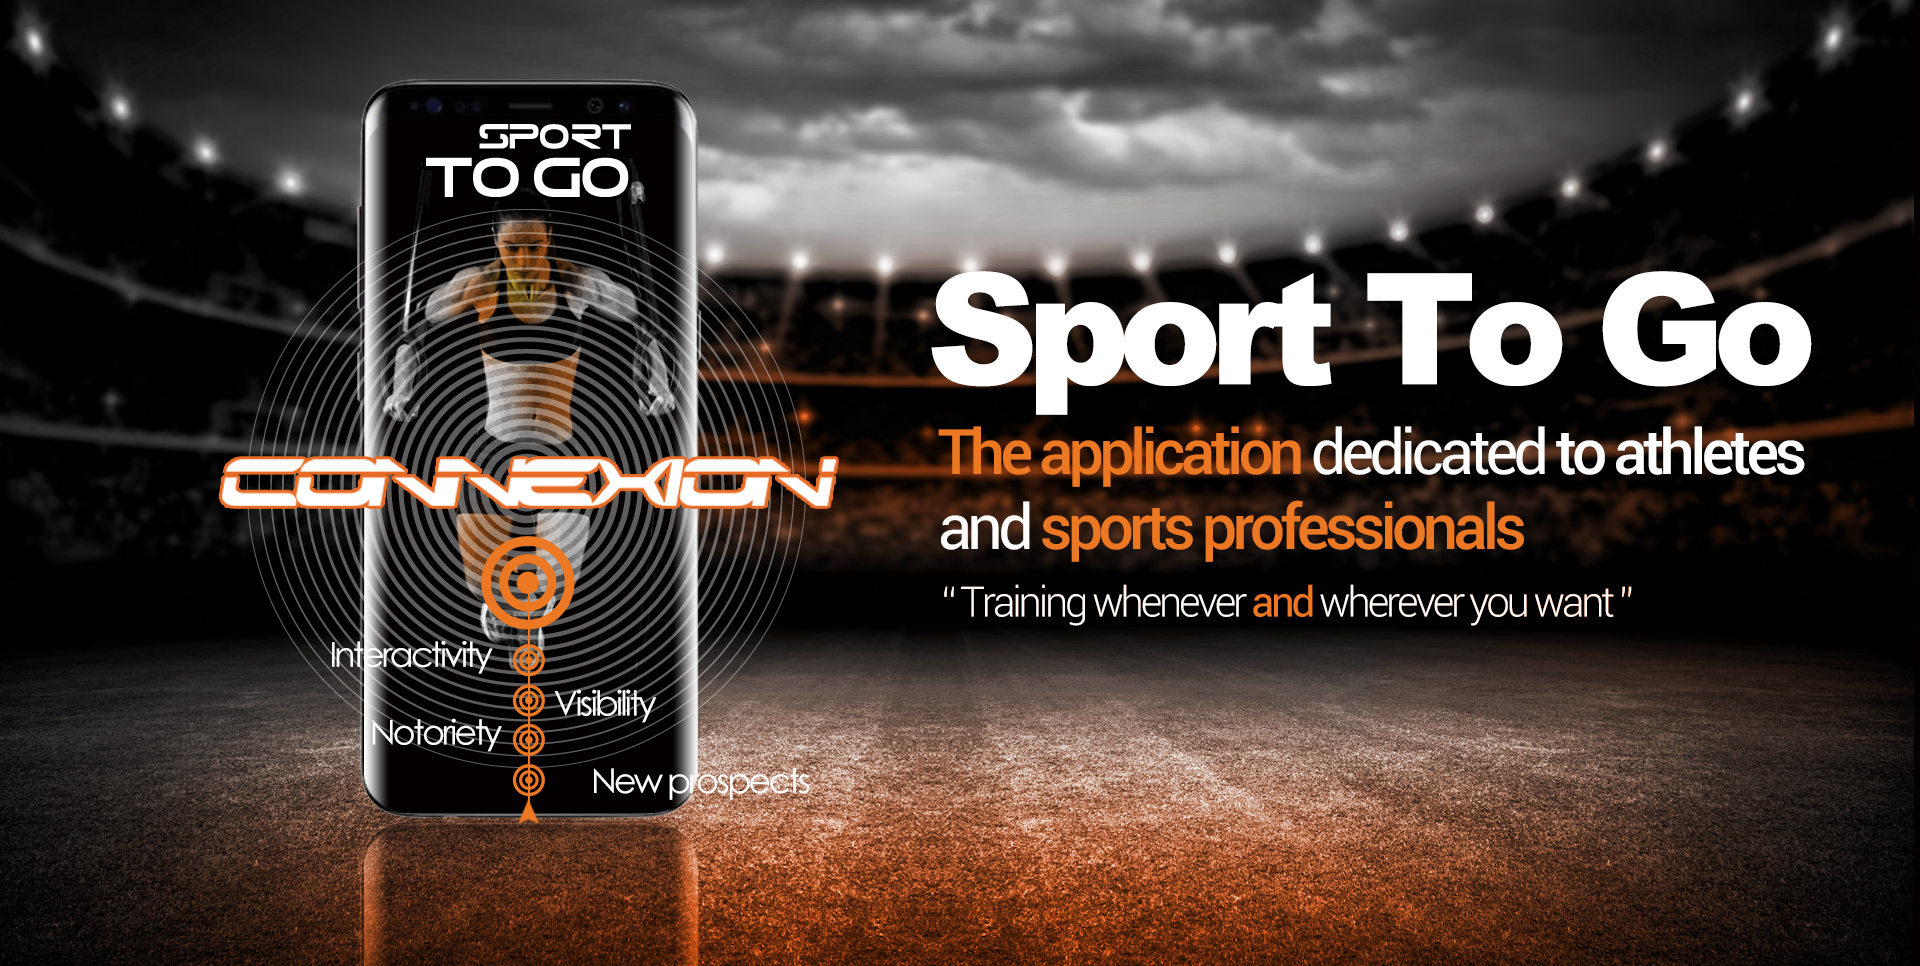 The application dedicated to athletes and sports professionals